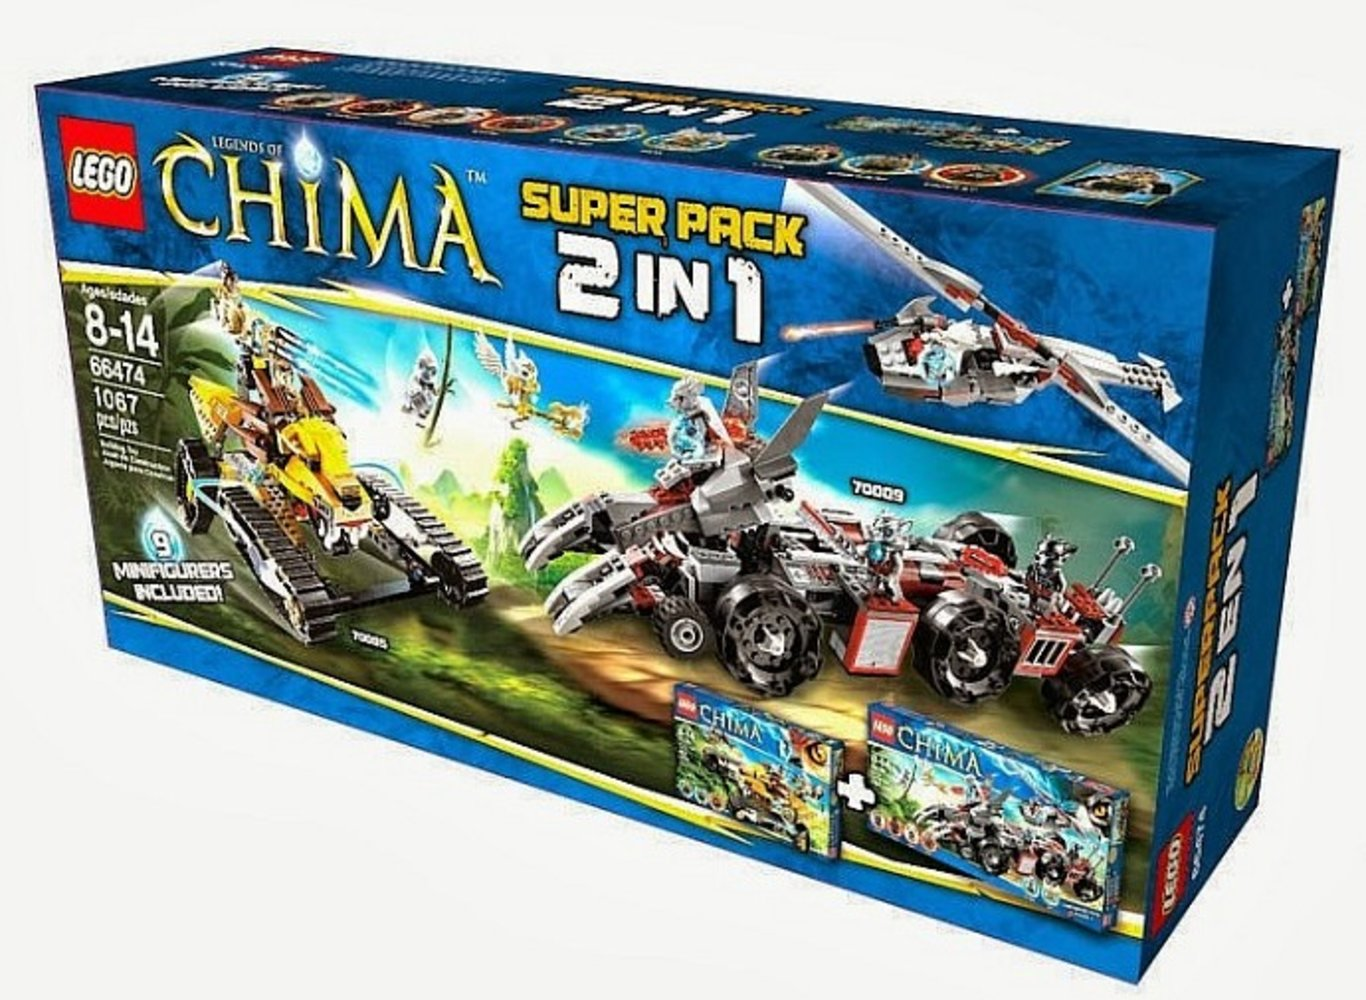 Legends of Chima Super Pack 2 in 1